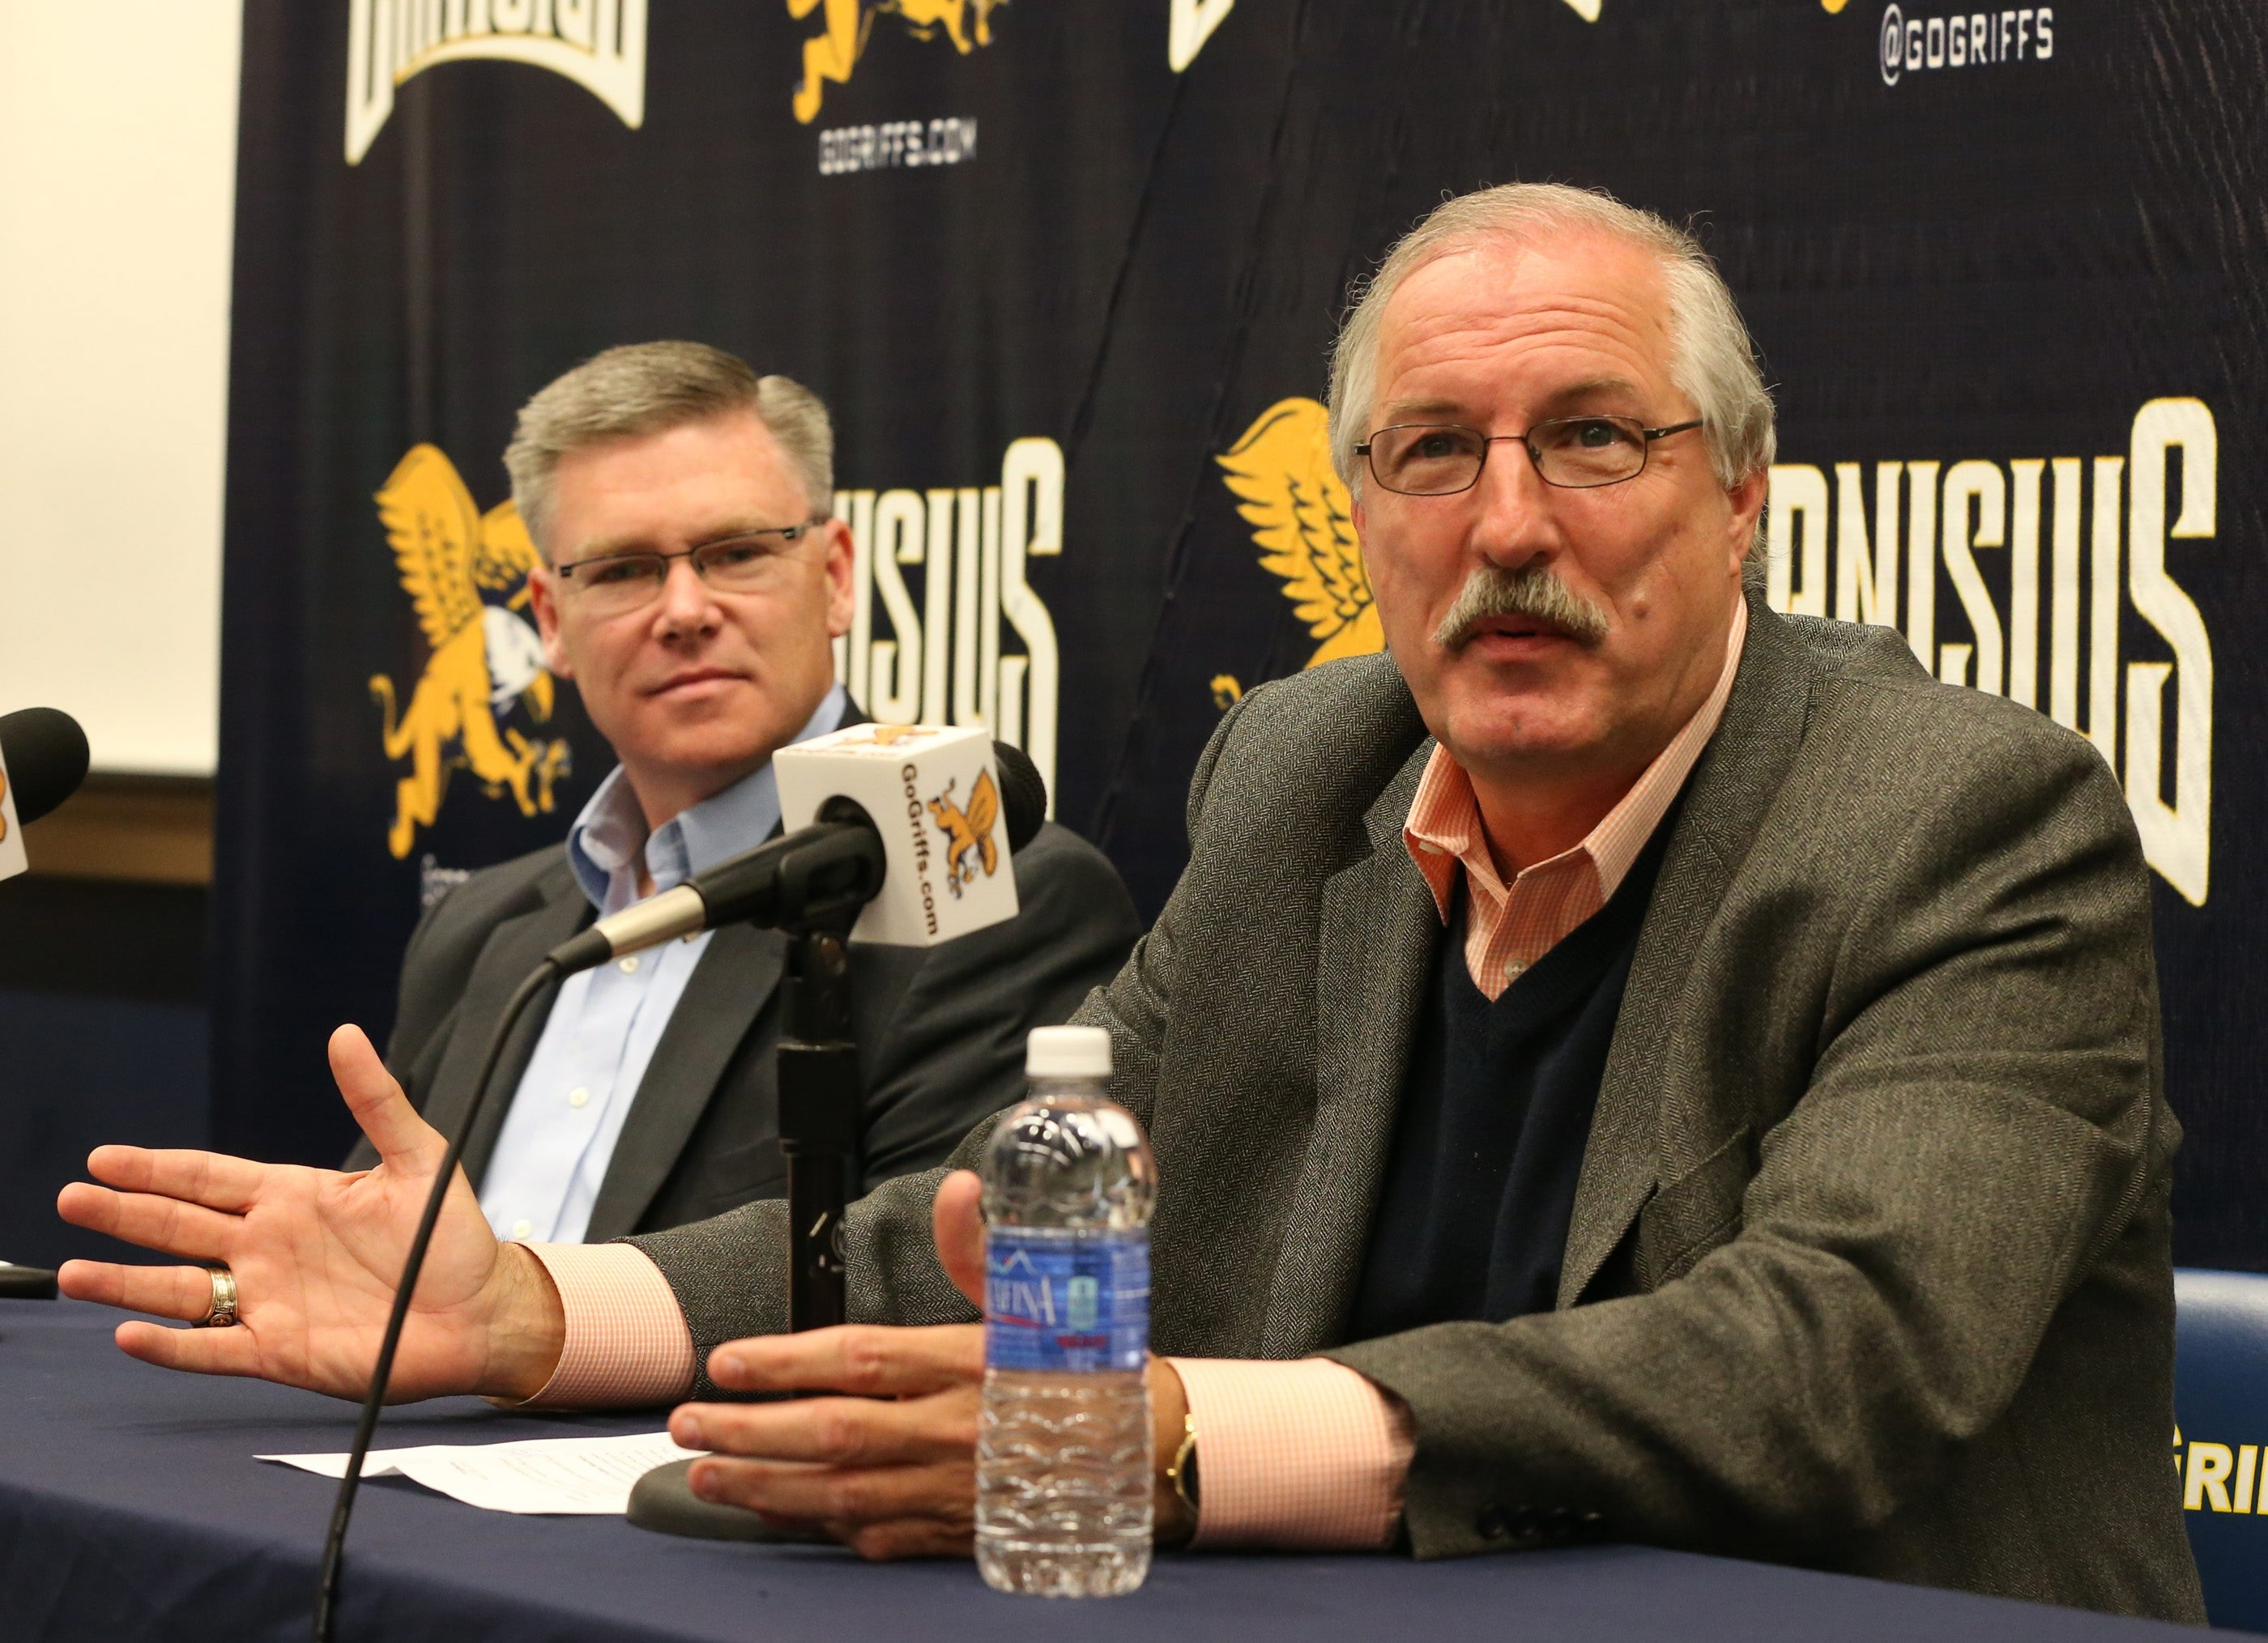 Canisius coach Jim Baron was emotional while discussing his decision to retire at a news conference at Canisius College on Friday. (James P. McCoy/Buffalo News)